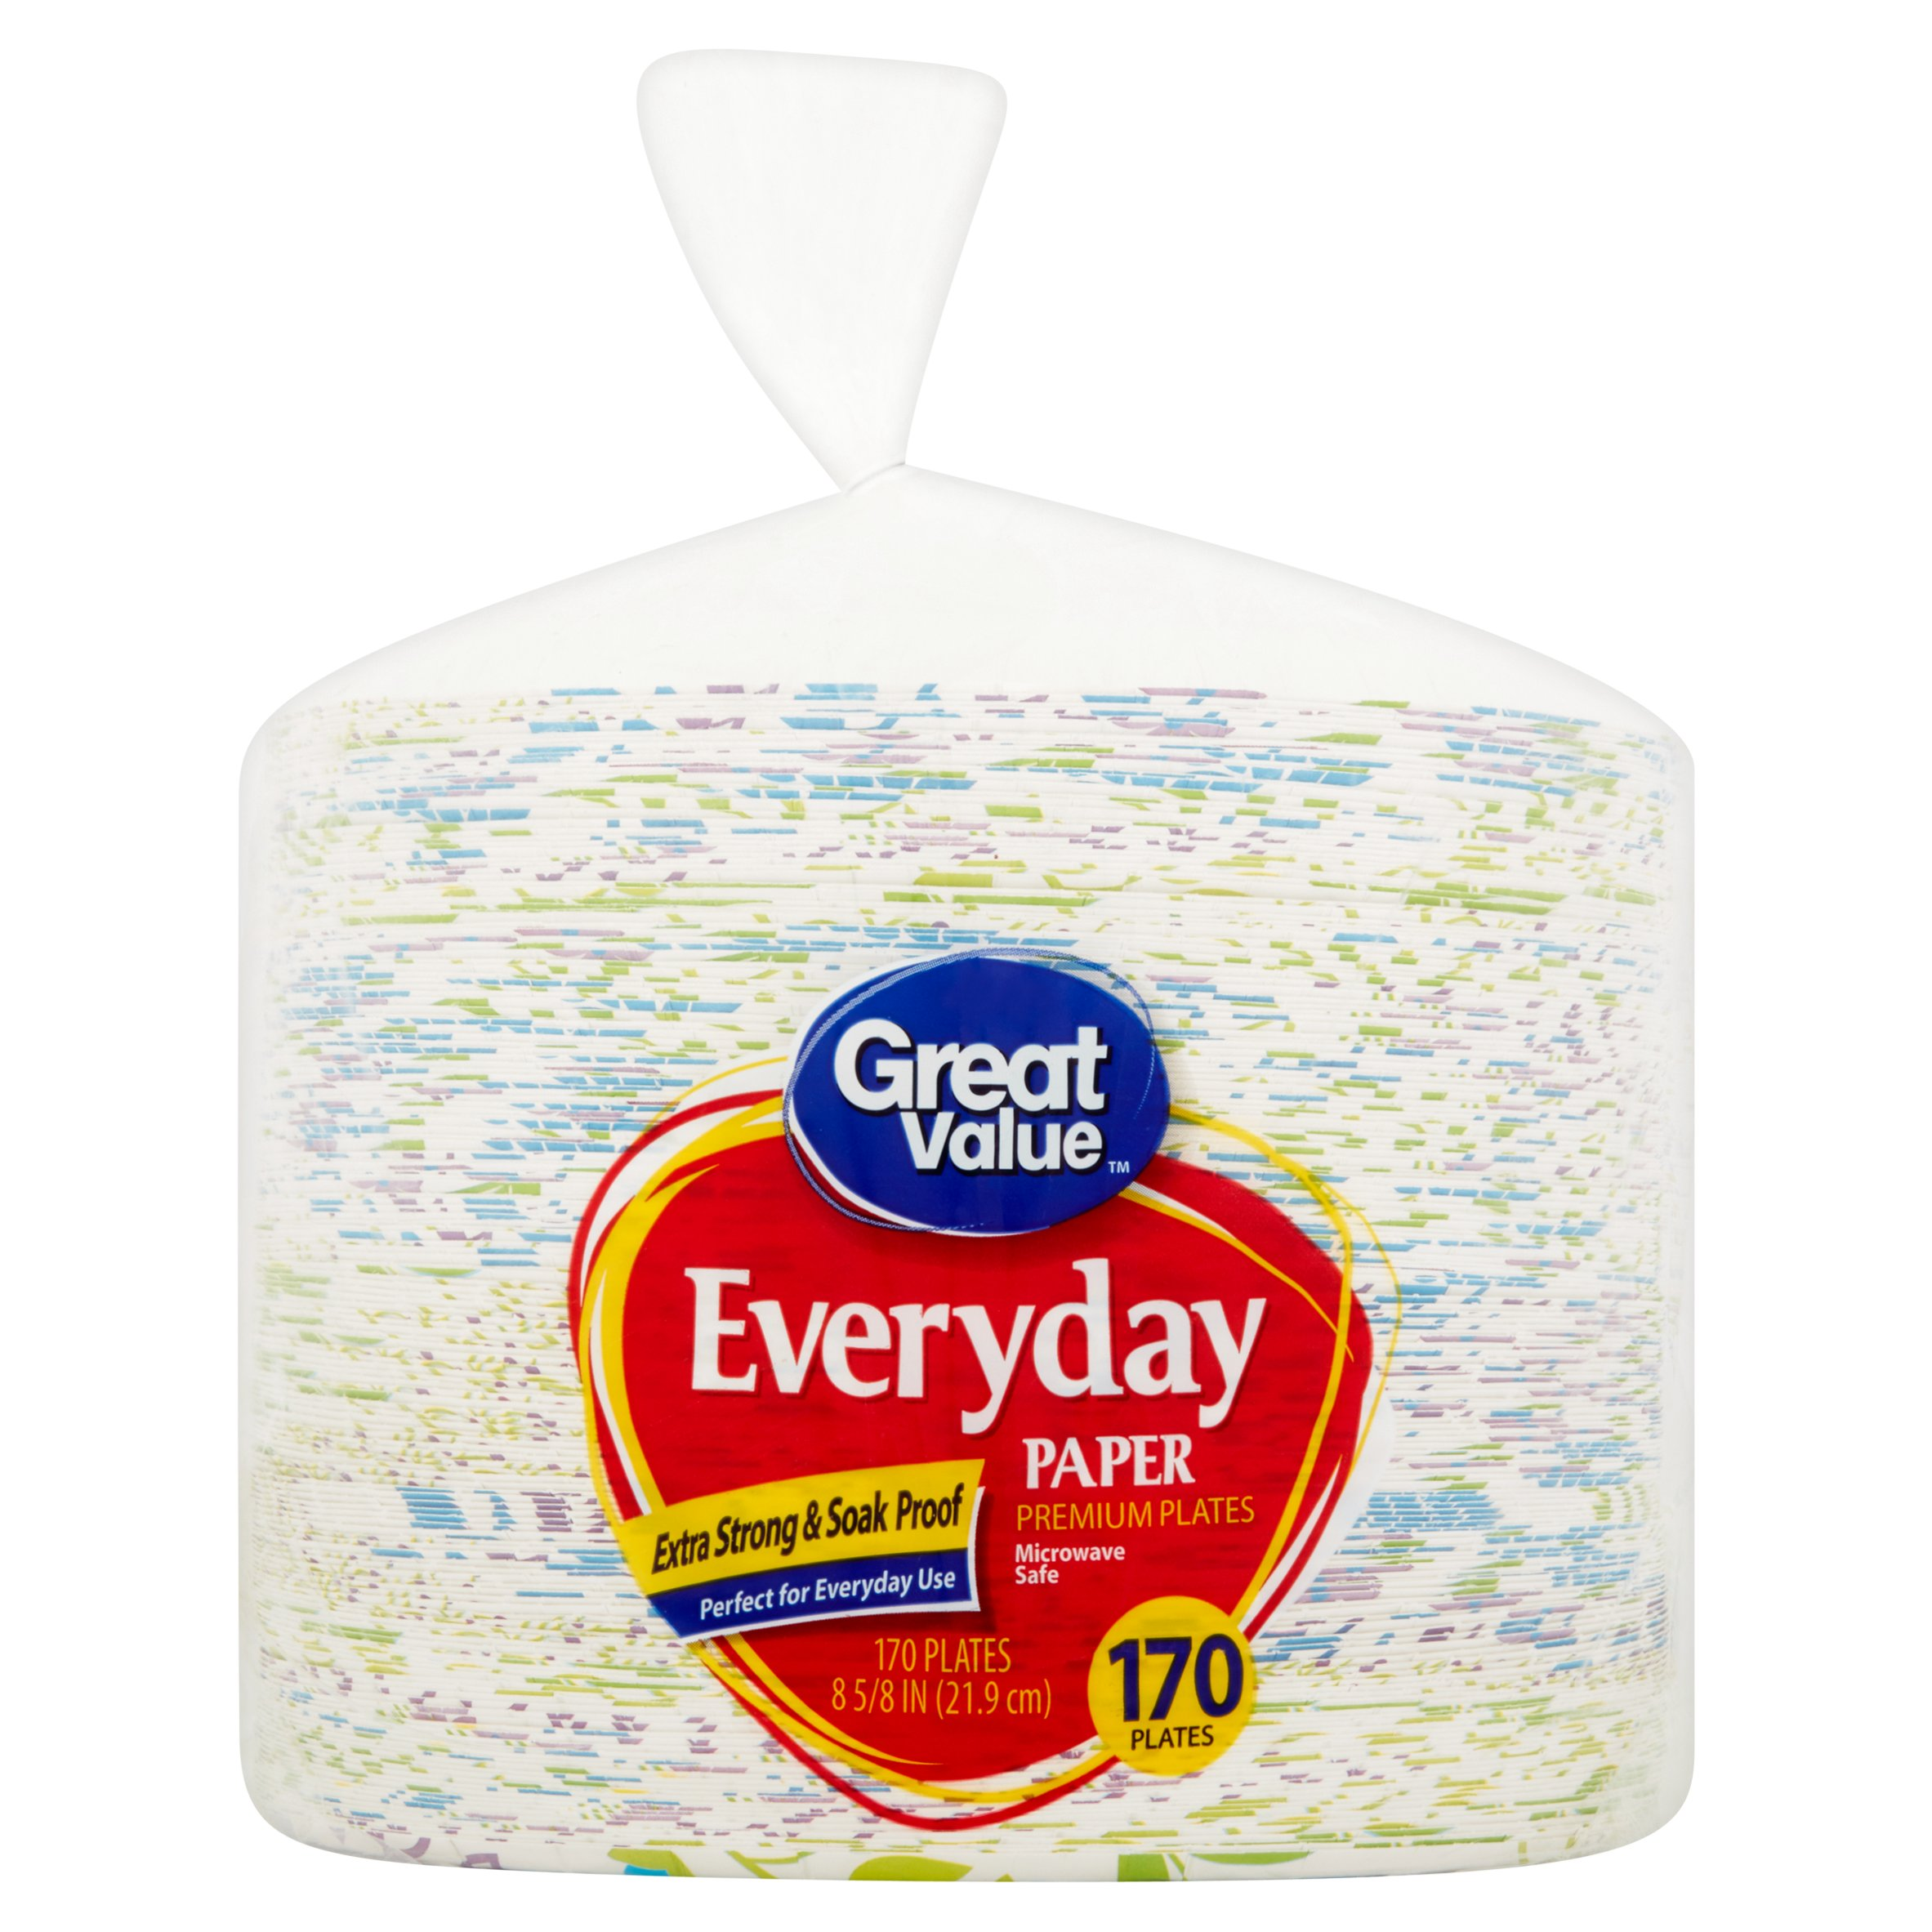 Great Value Everyday Premium Paper Plates, 170 count by Wal-Mart Stores, Inc.